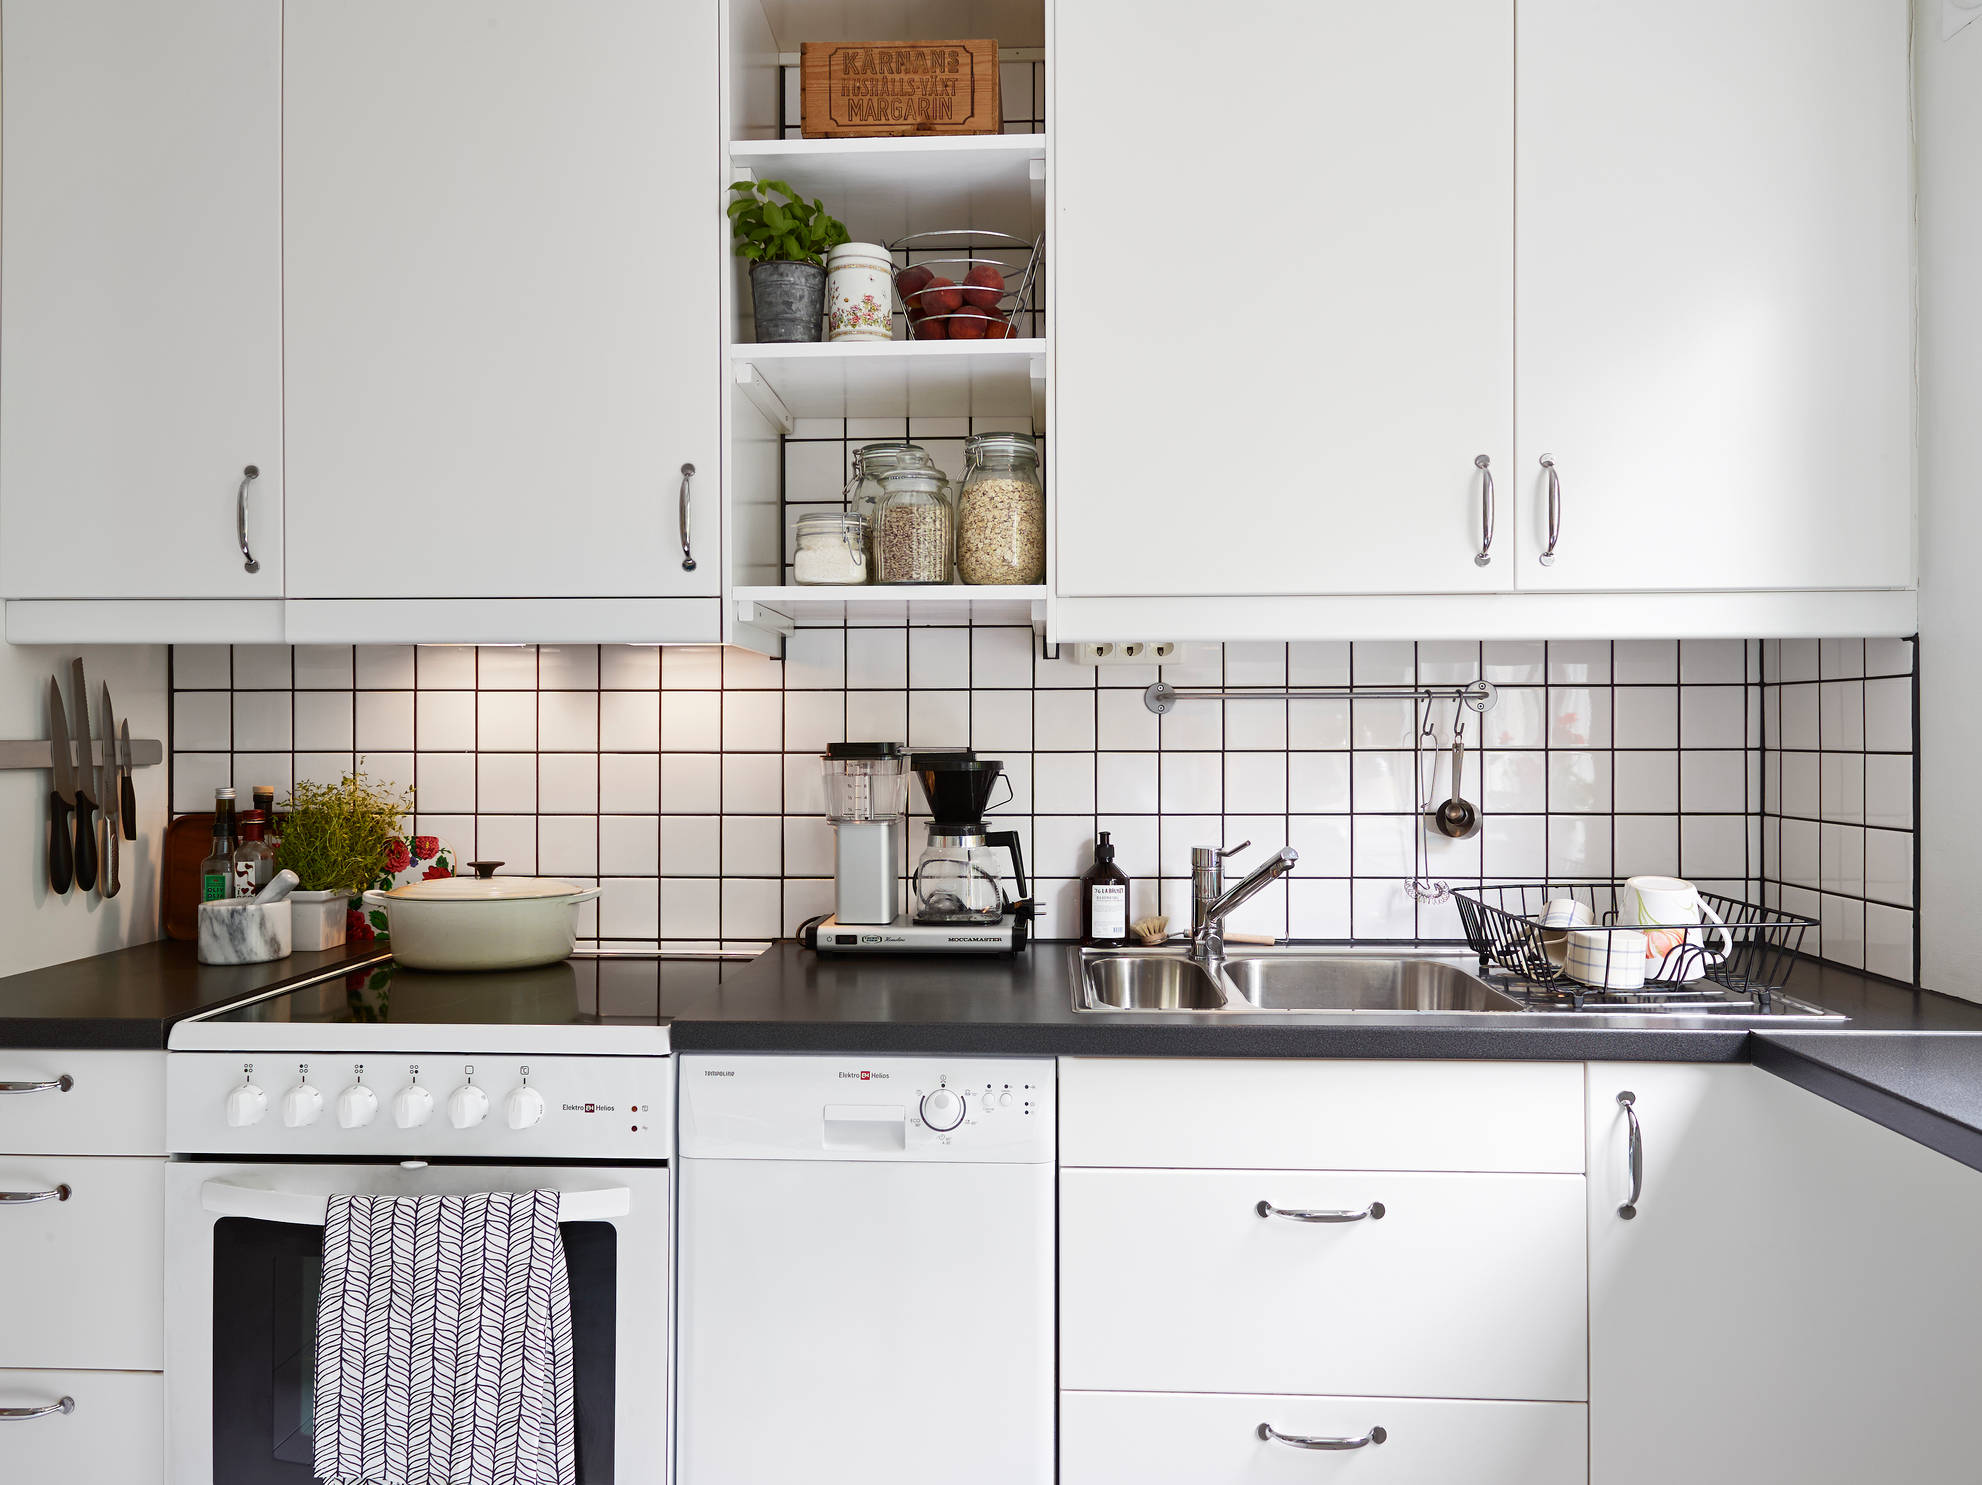 Tiled Kitchen Ideas Part - 37: Place The Tiles In A Straight Set To Emphasize Their Geometry ...